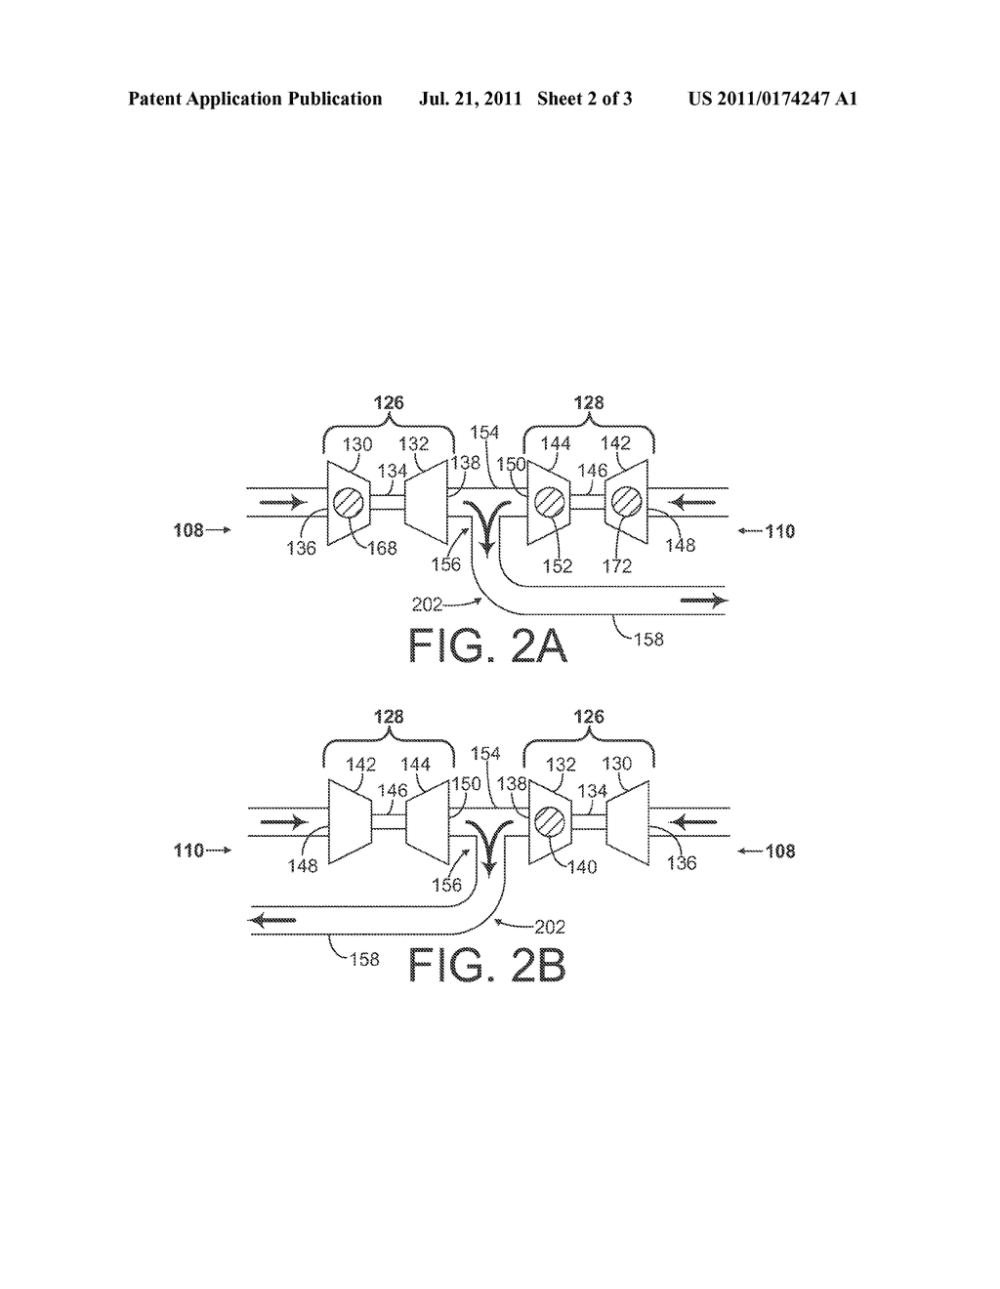 medium resolution of central turbocharger mounting configuration for a twin turbo engine diagram schematic and image 03